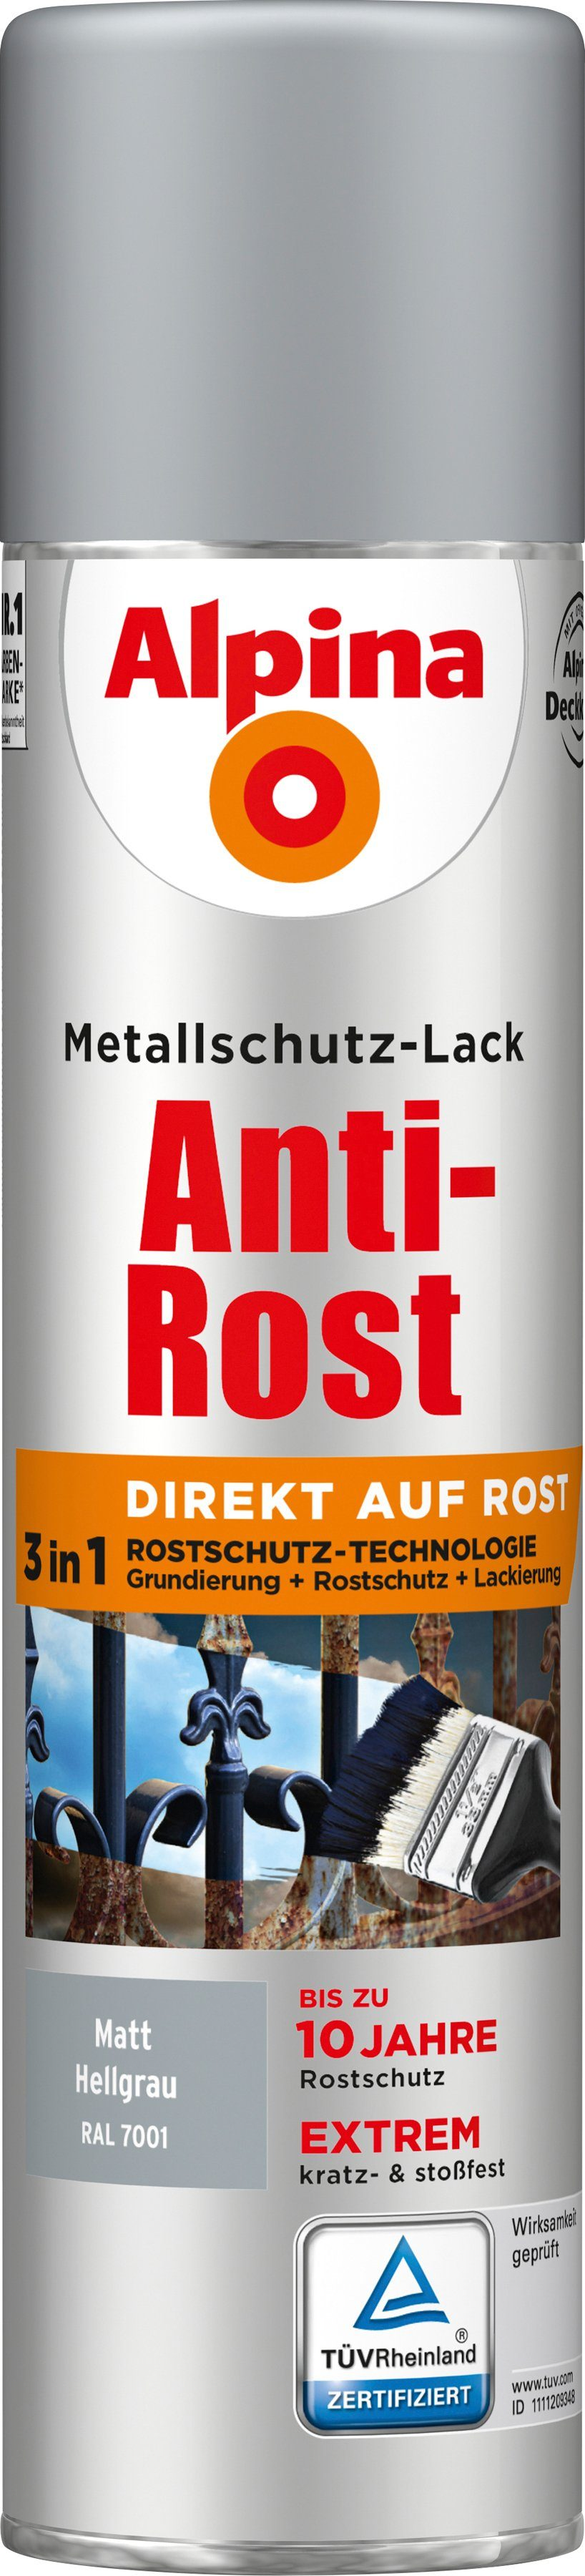 ALPINA Metallschutzlack »Anti-Rost Spray - Matt Hellgrau«, 3 in1, 400 ml